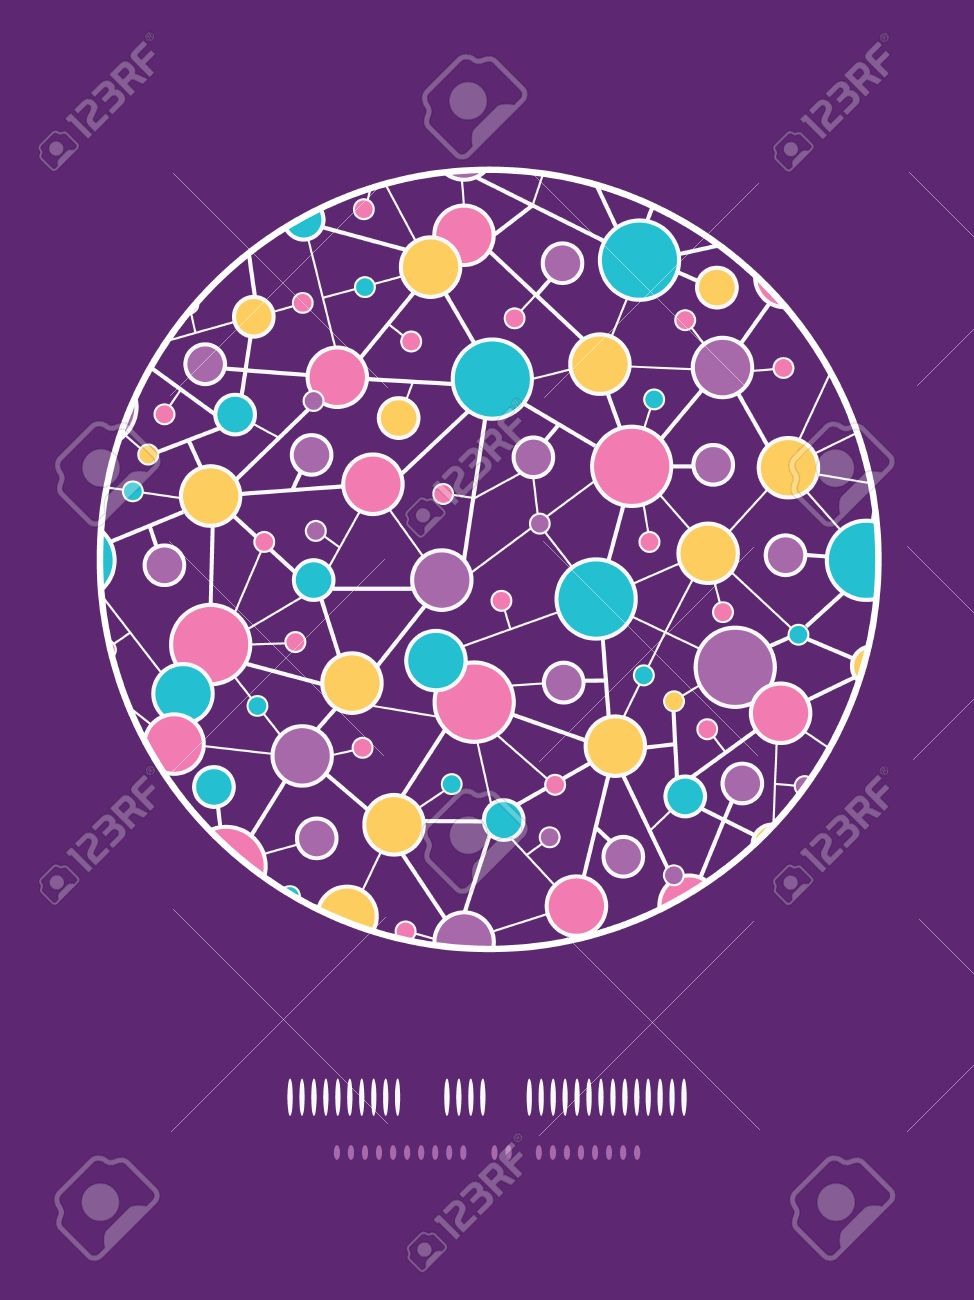 Molecular Structure Circle Seamless Pattern background Stock Vector - 18011785